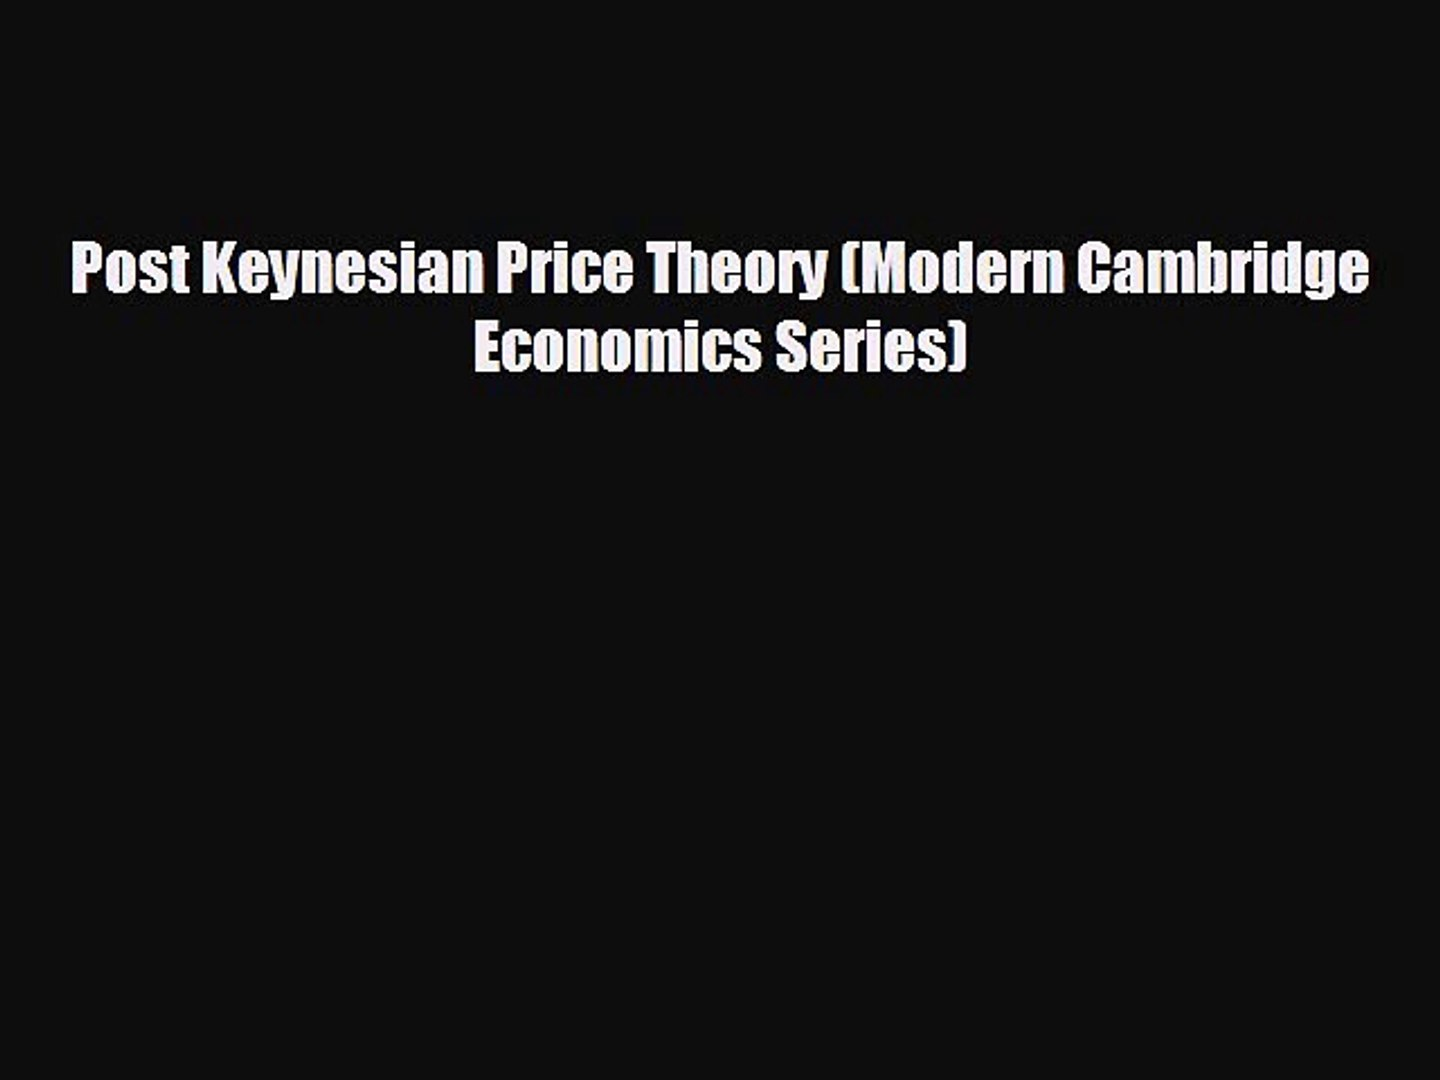 Post Keynesian Price Theory (Modern Cambridge Economics Series)